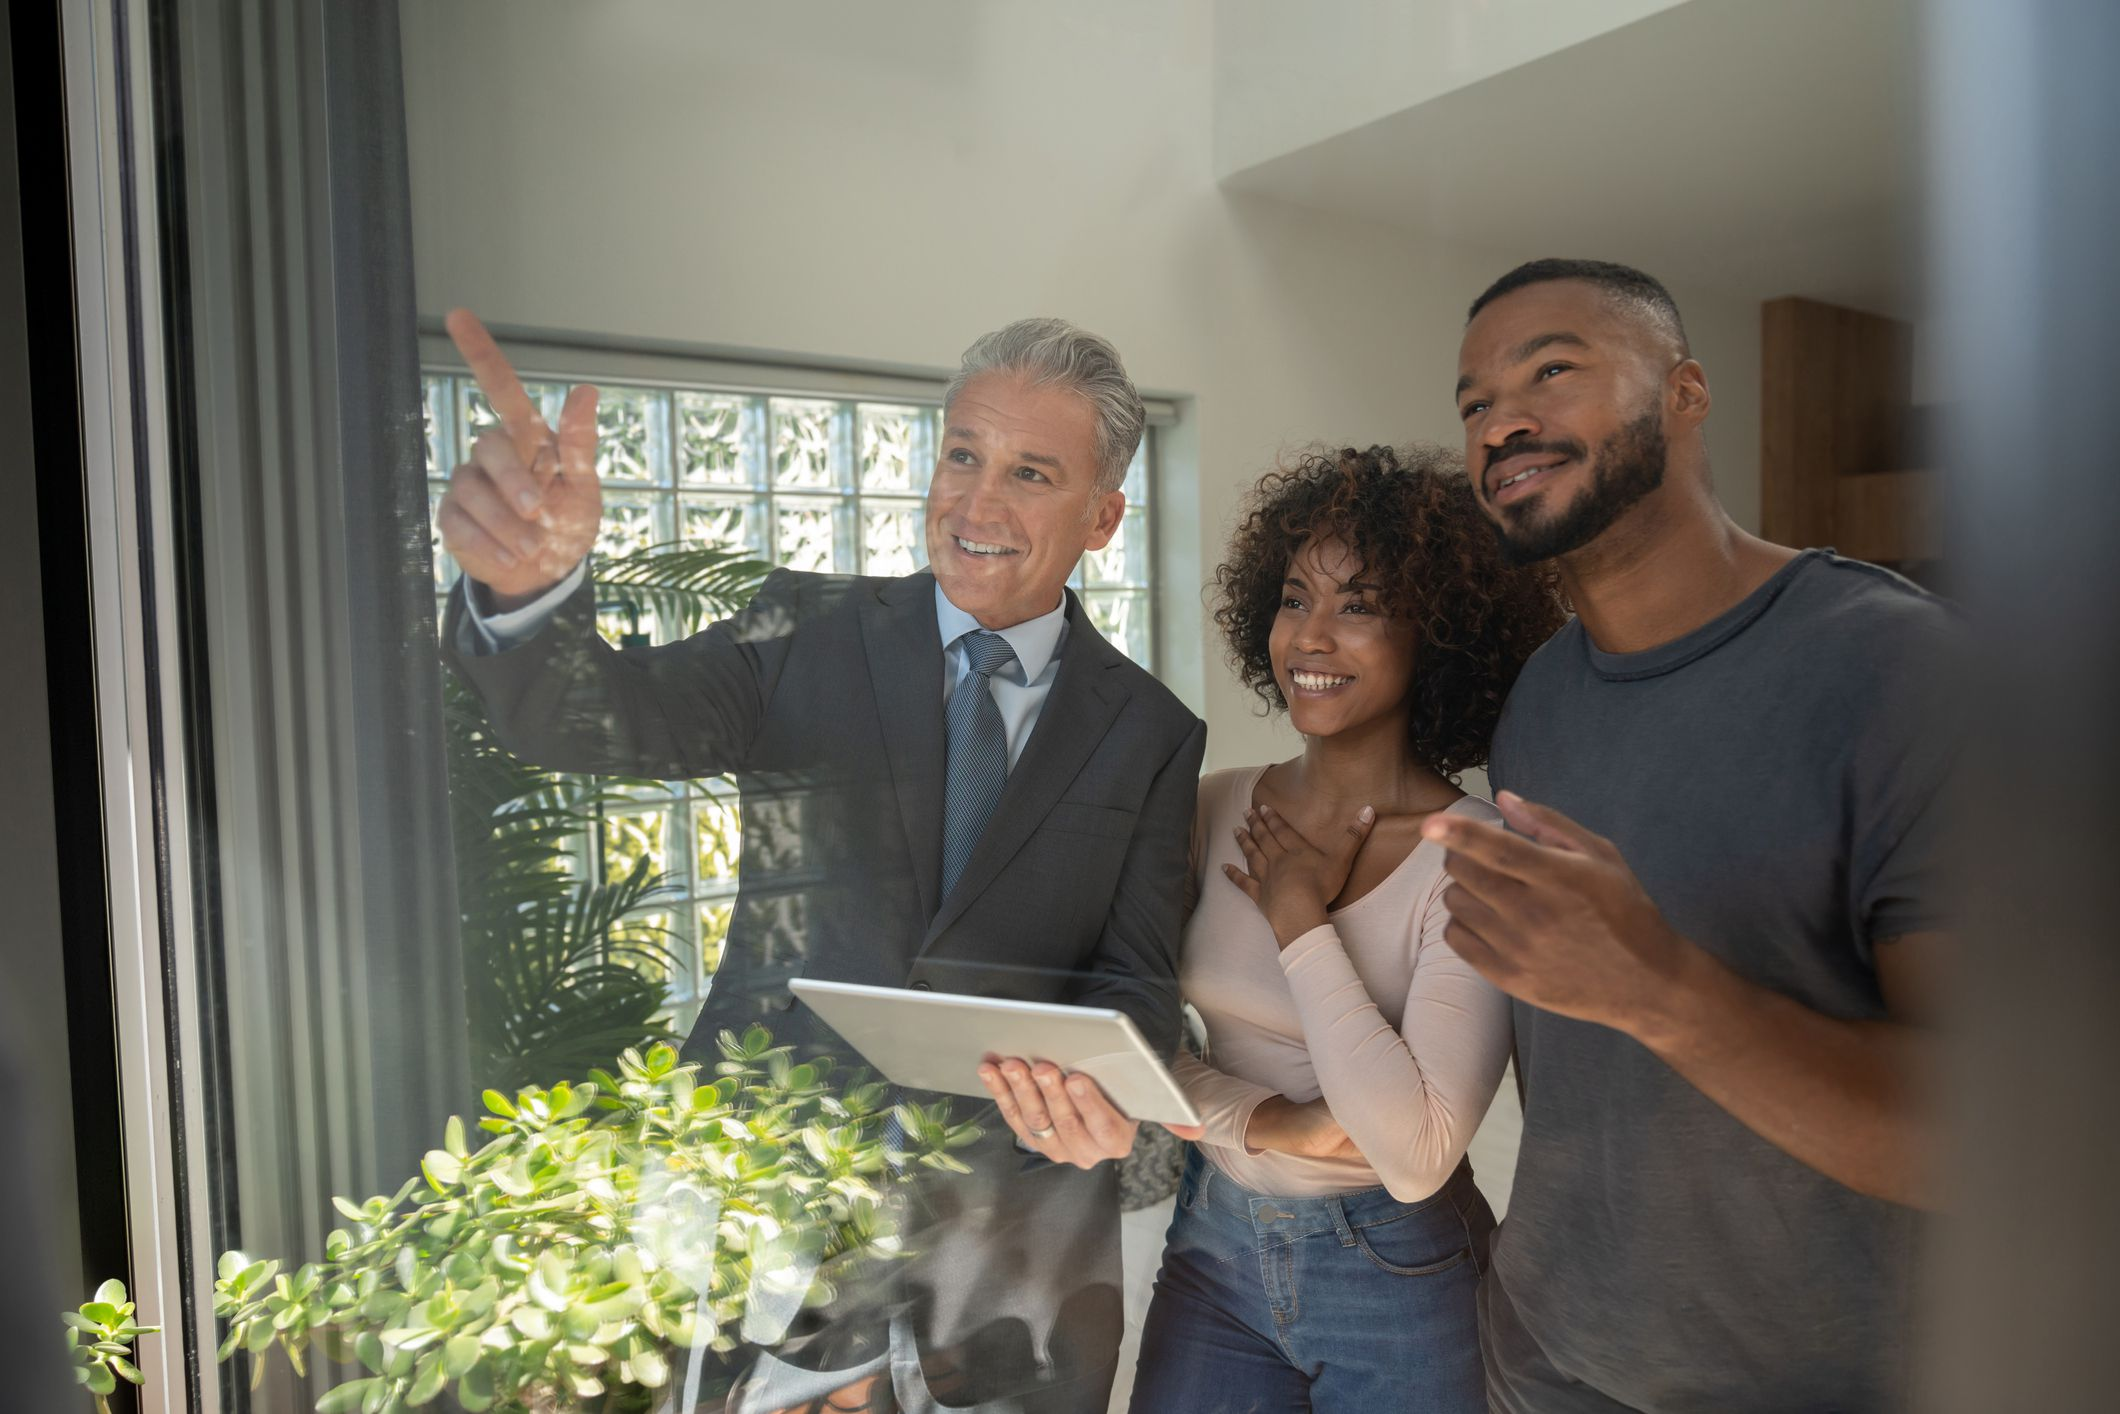 The Difference Between A Real Estate Agent And Lawyer